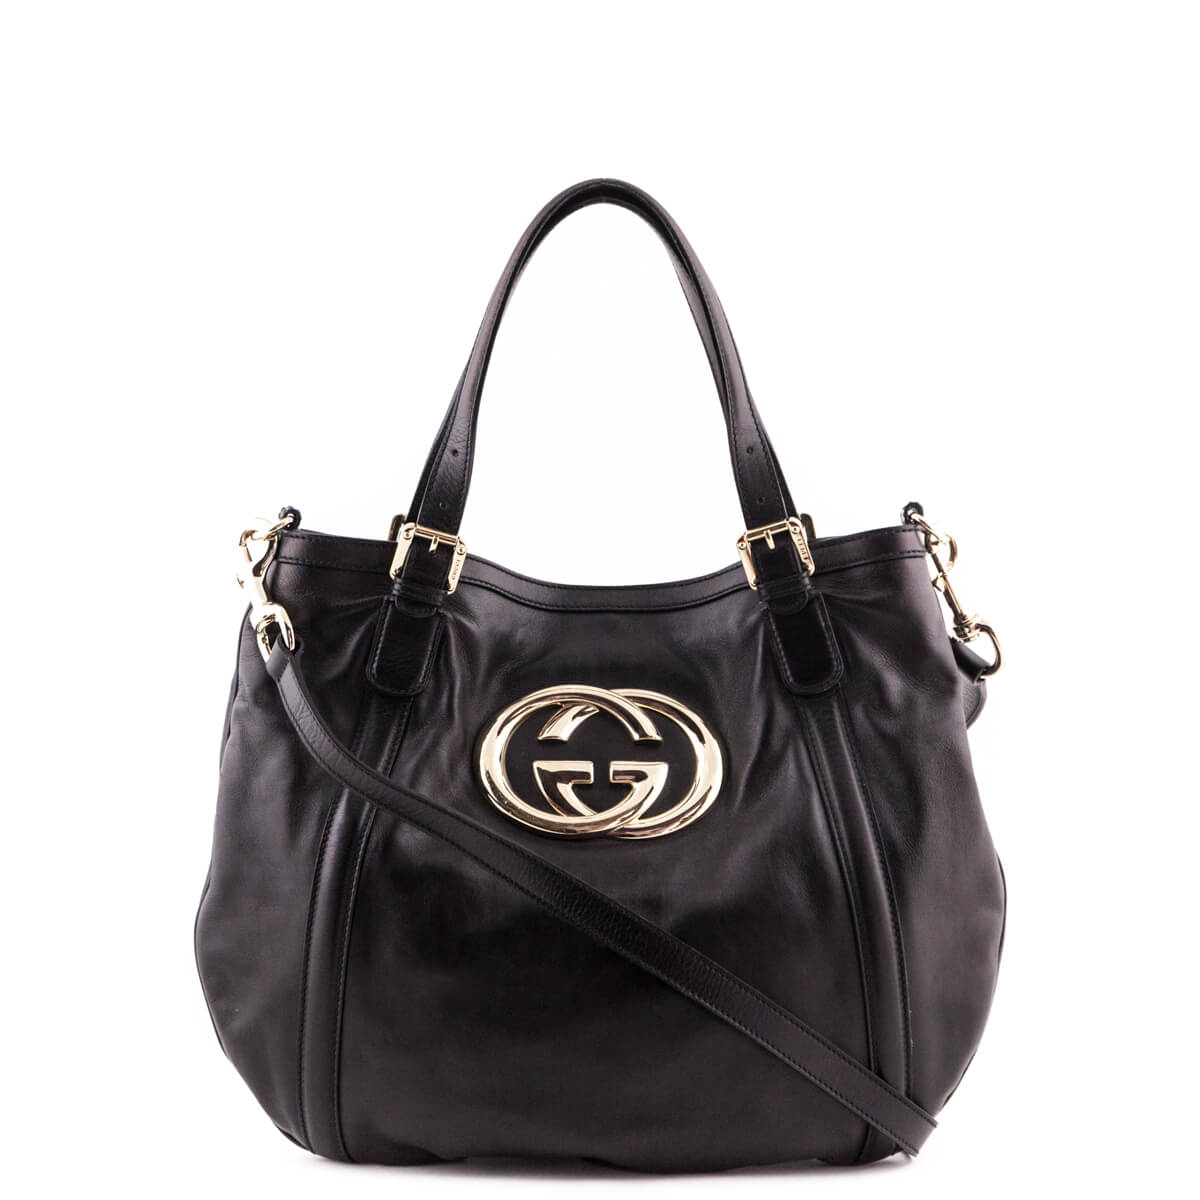 f216edadb80c60 Gucci Black Leather Interlocking GG Tote - LOVE that BAG - Preowned  Authentic Designer Handbags ...